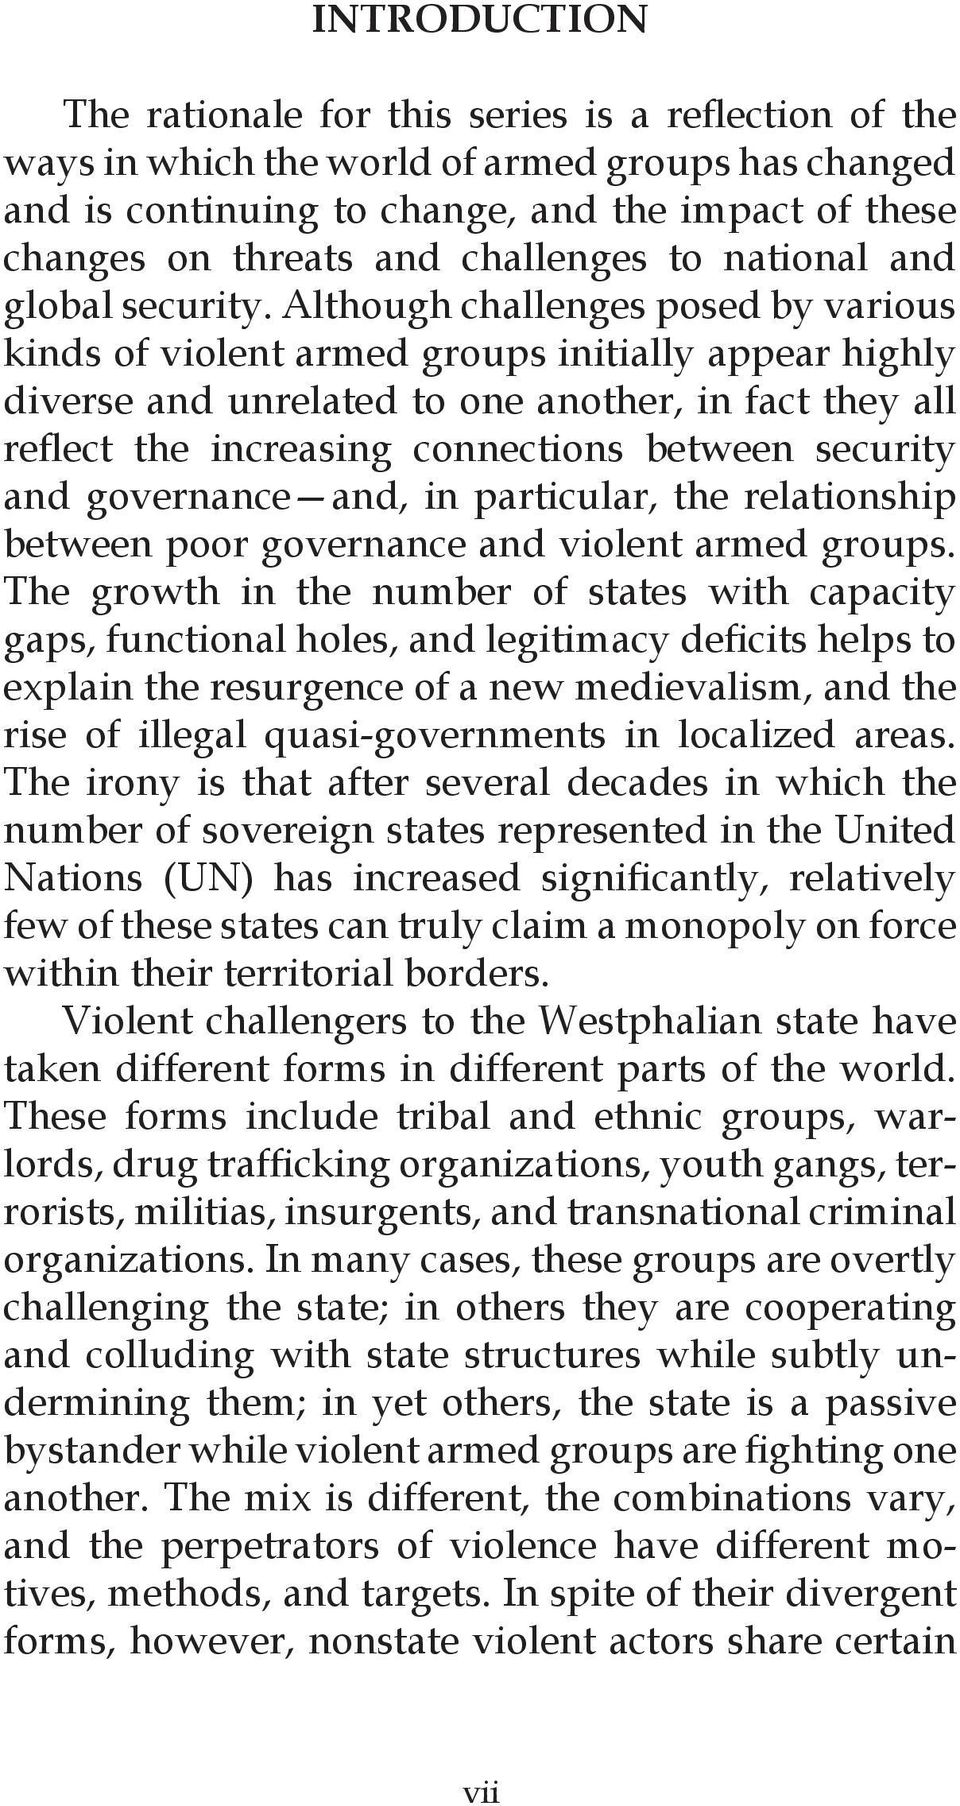 Although challenges posed by various kinds of violent armed groups initially appear highly diverse and unrelated to one another, in fact they all reflect the increasing connections between security